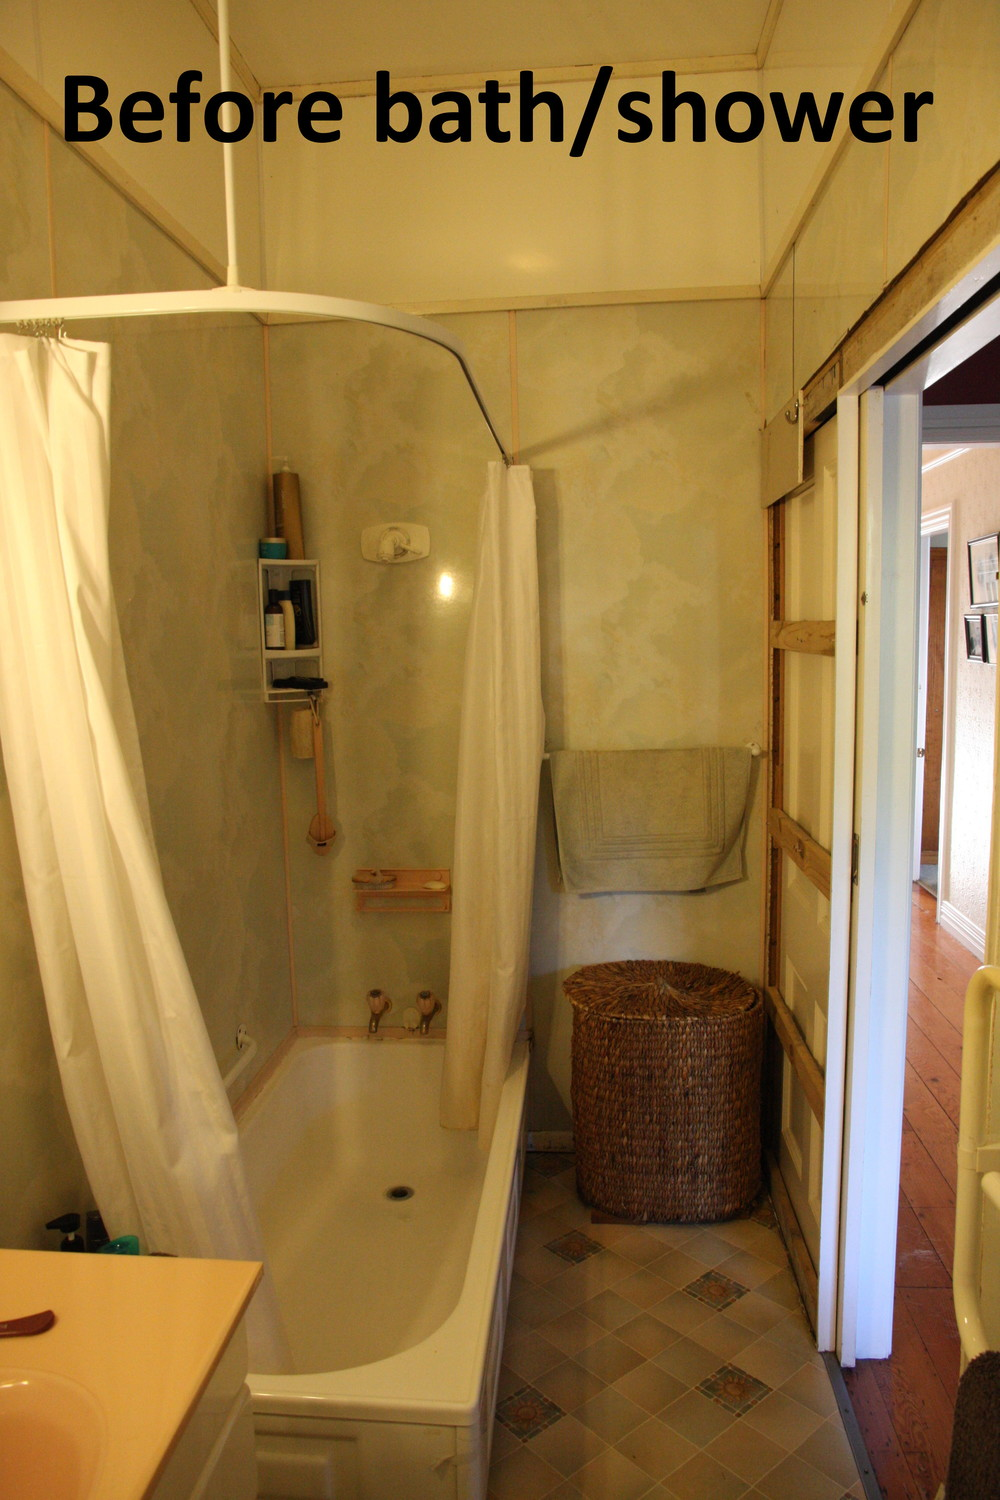 Bath Versus Shower...What Would You Do? — The Complete Picture